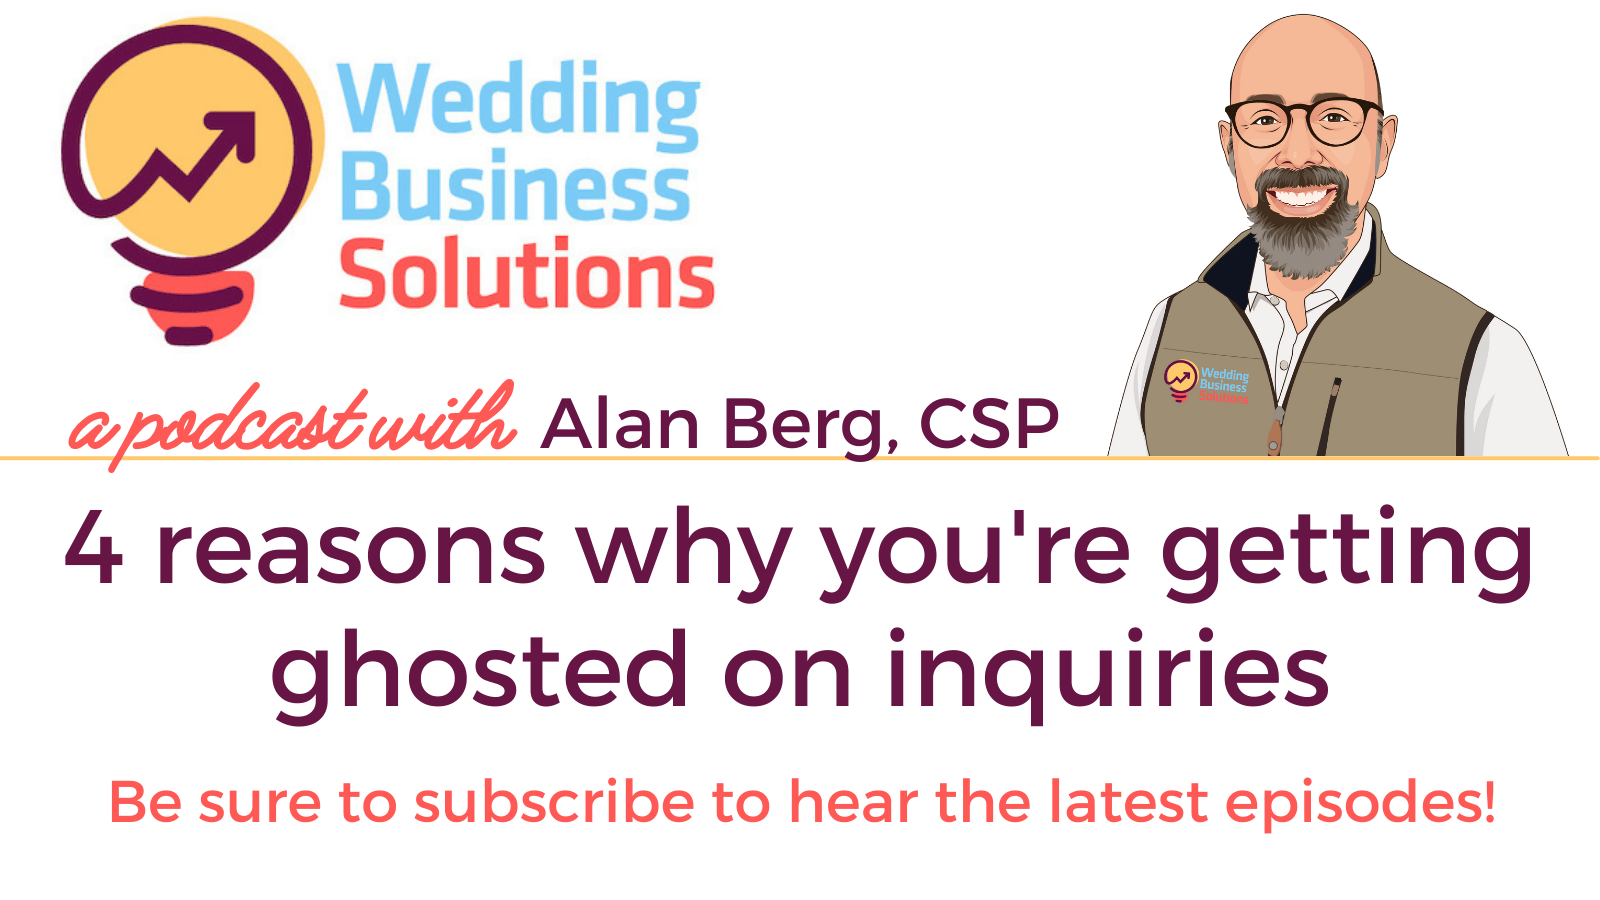 Wedding Business Solutions Podcast - 4 reasons why you're getting ghosted on inquiries